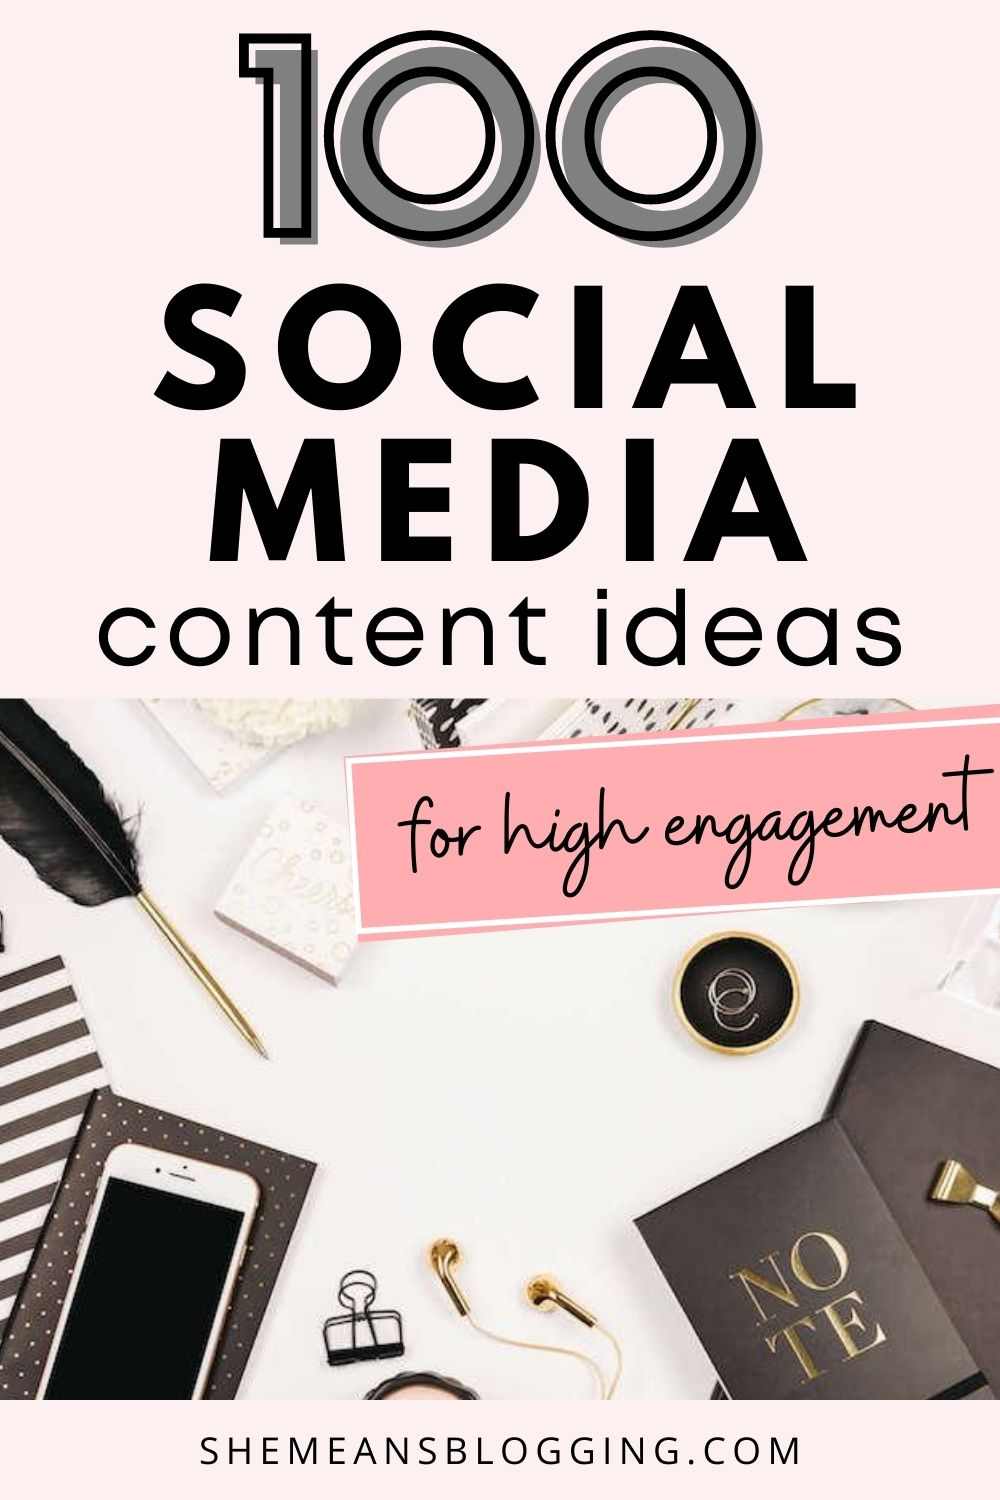 Trying hard to be consistent on social media? Try out these 100+ social media content ideas for killer engagement on social media! Find the best ideas for social media content strategy. This is actually FREE 3 months of content for you. #socialmediatips #socialmedia #socialmediamarketing